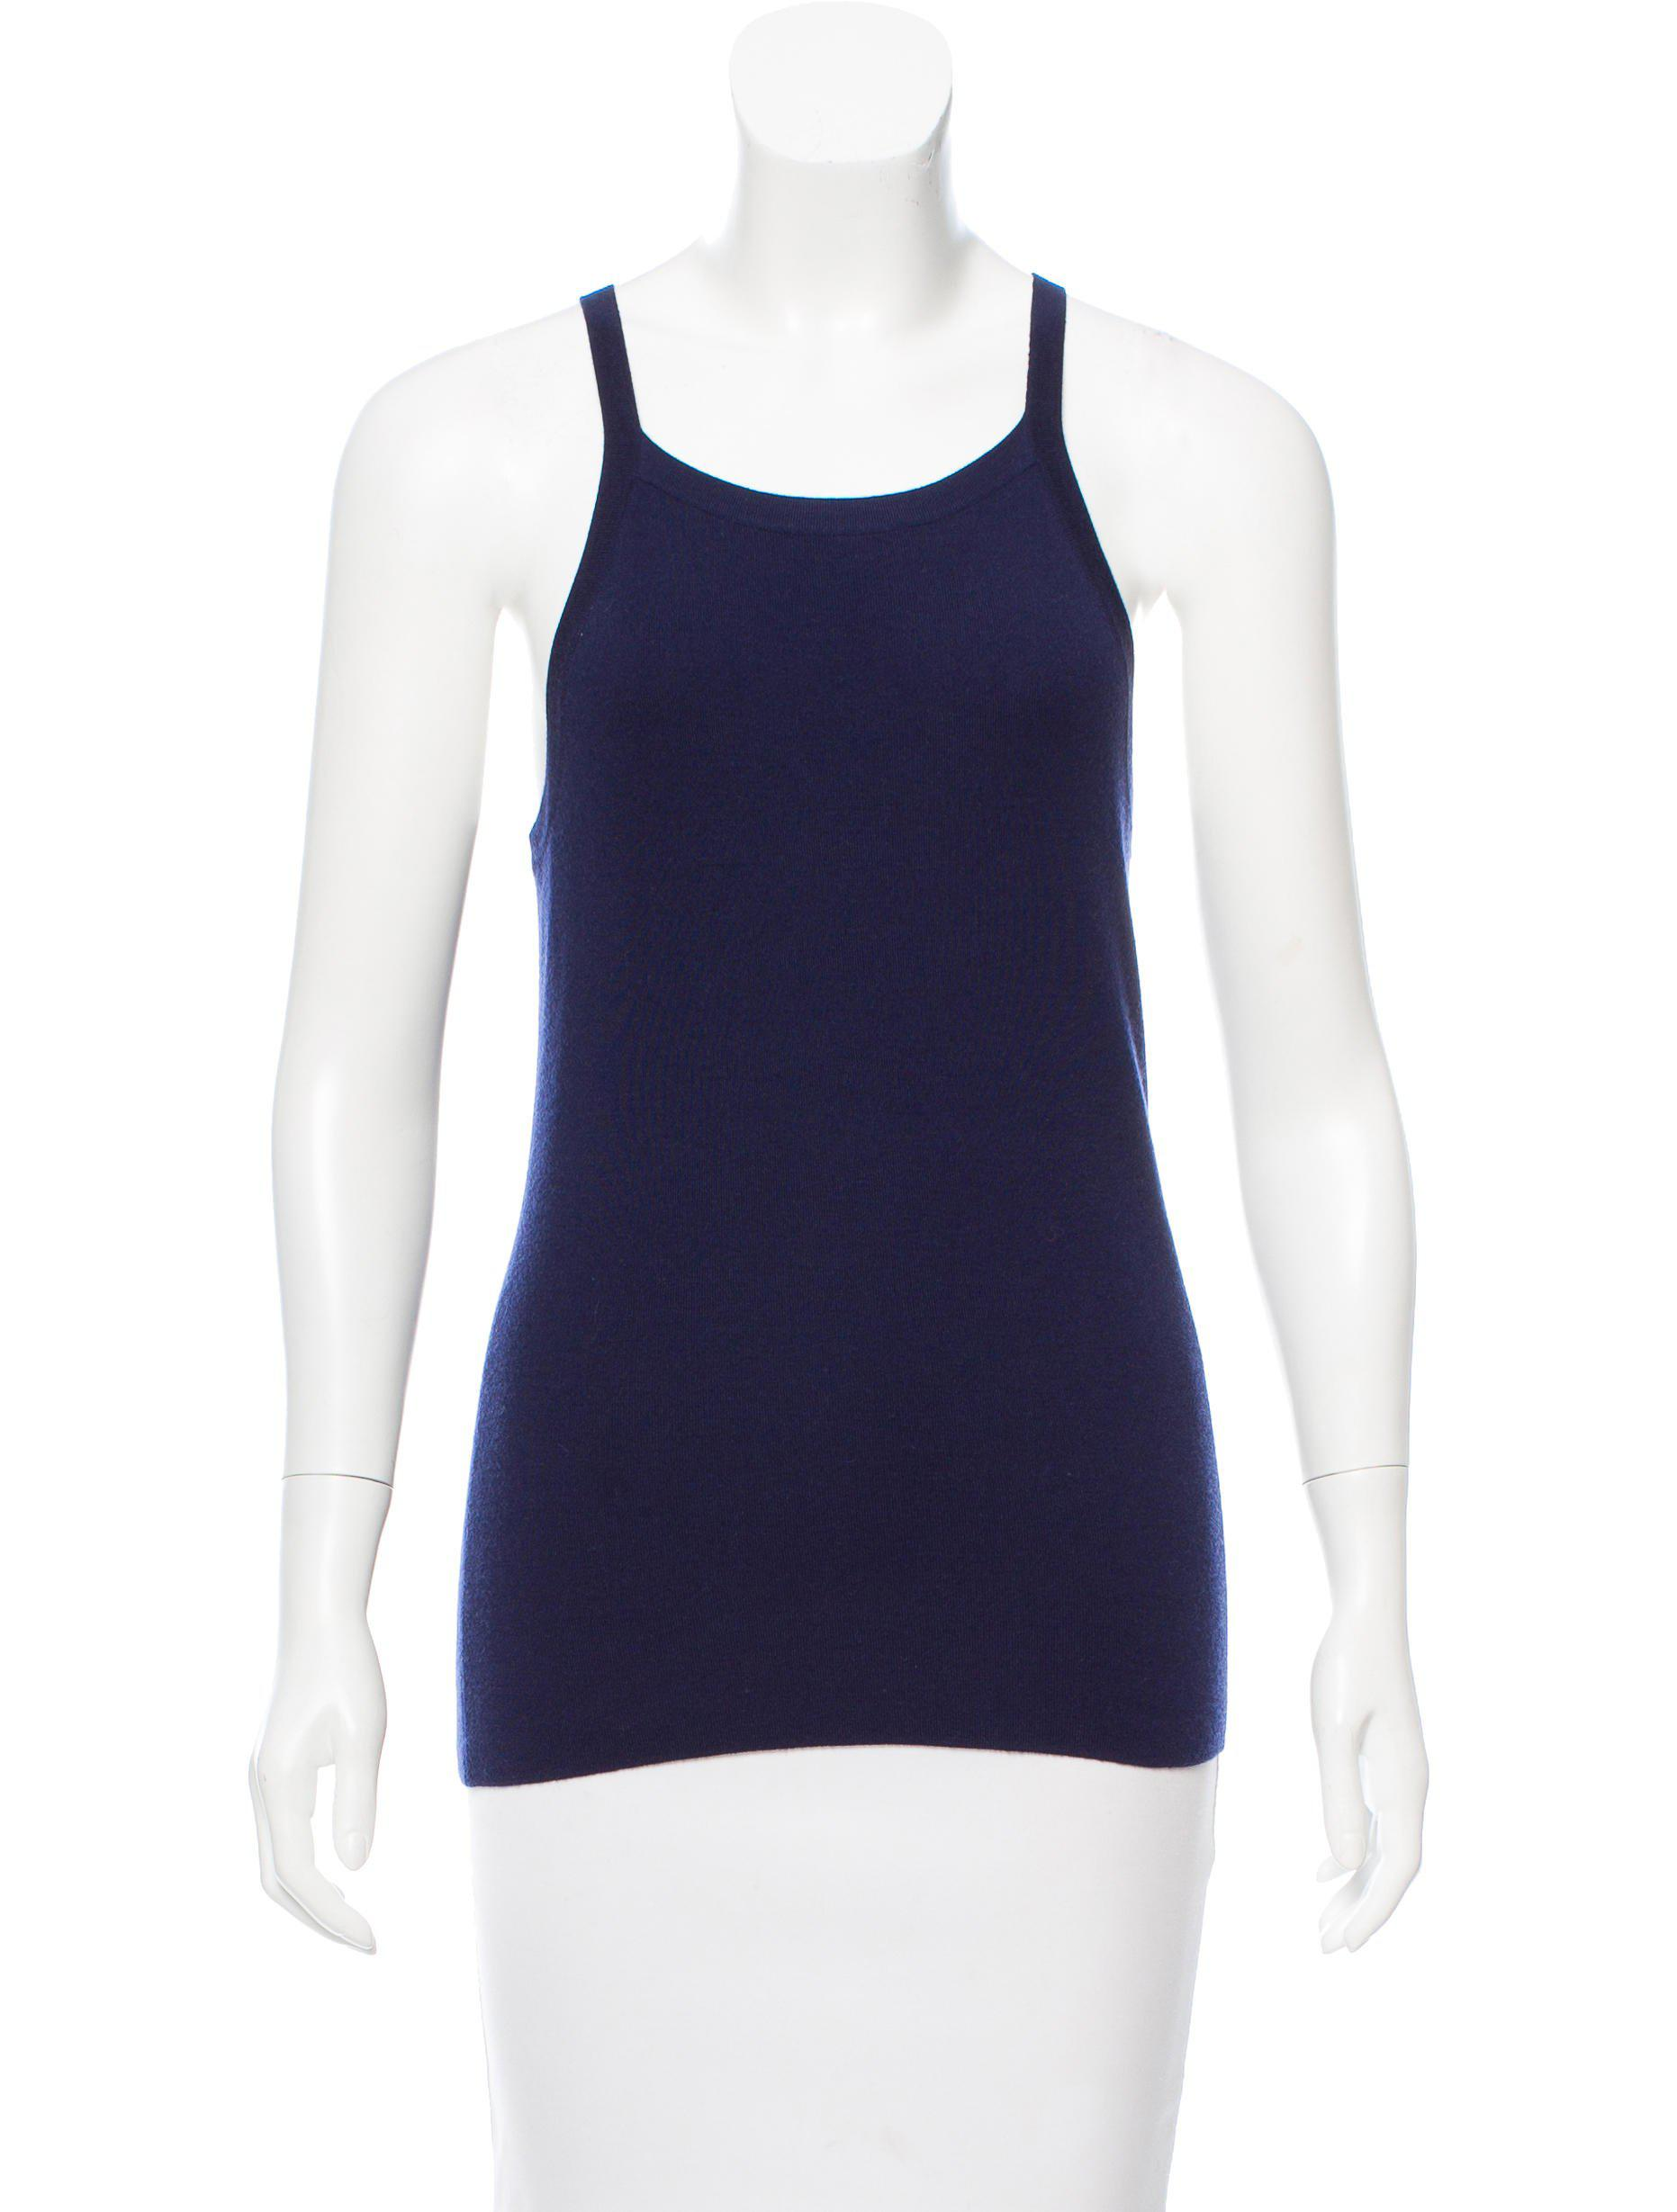 143bcb6e02591 Lyst - Michael Kors Sleeveless Cashmere Top W  Tags Navy in Blue